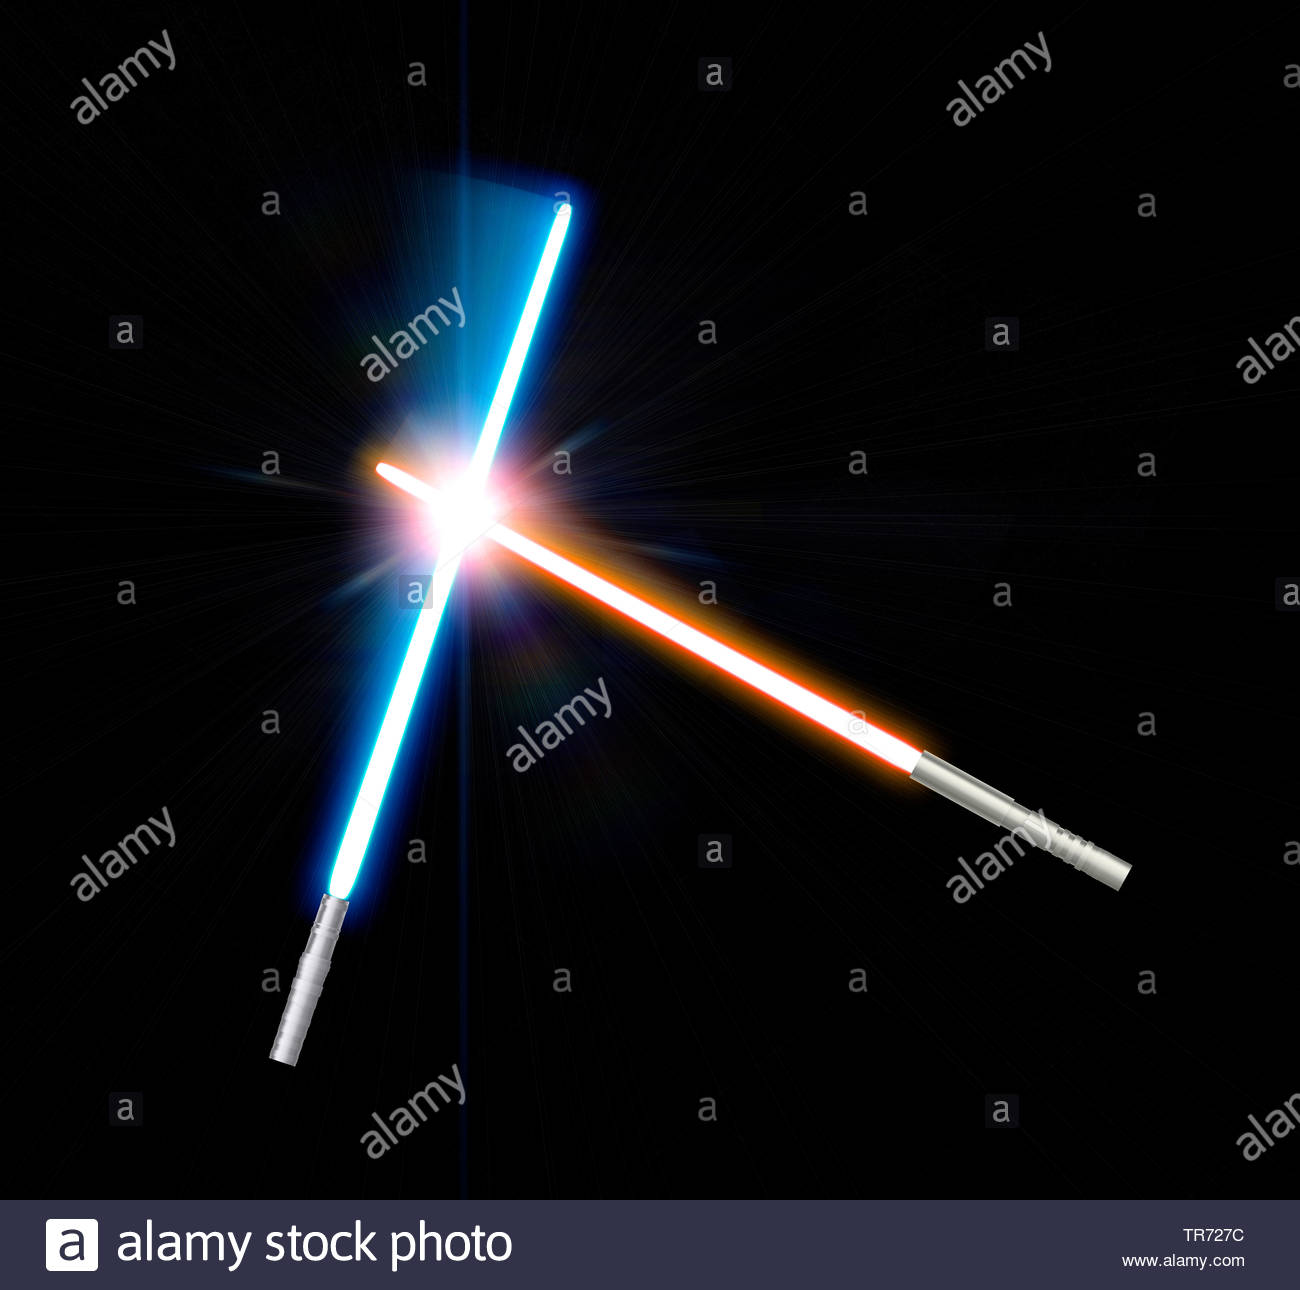 3D computer graphic red and blue lightsaber against black 1300x1290